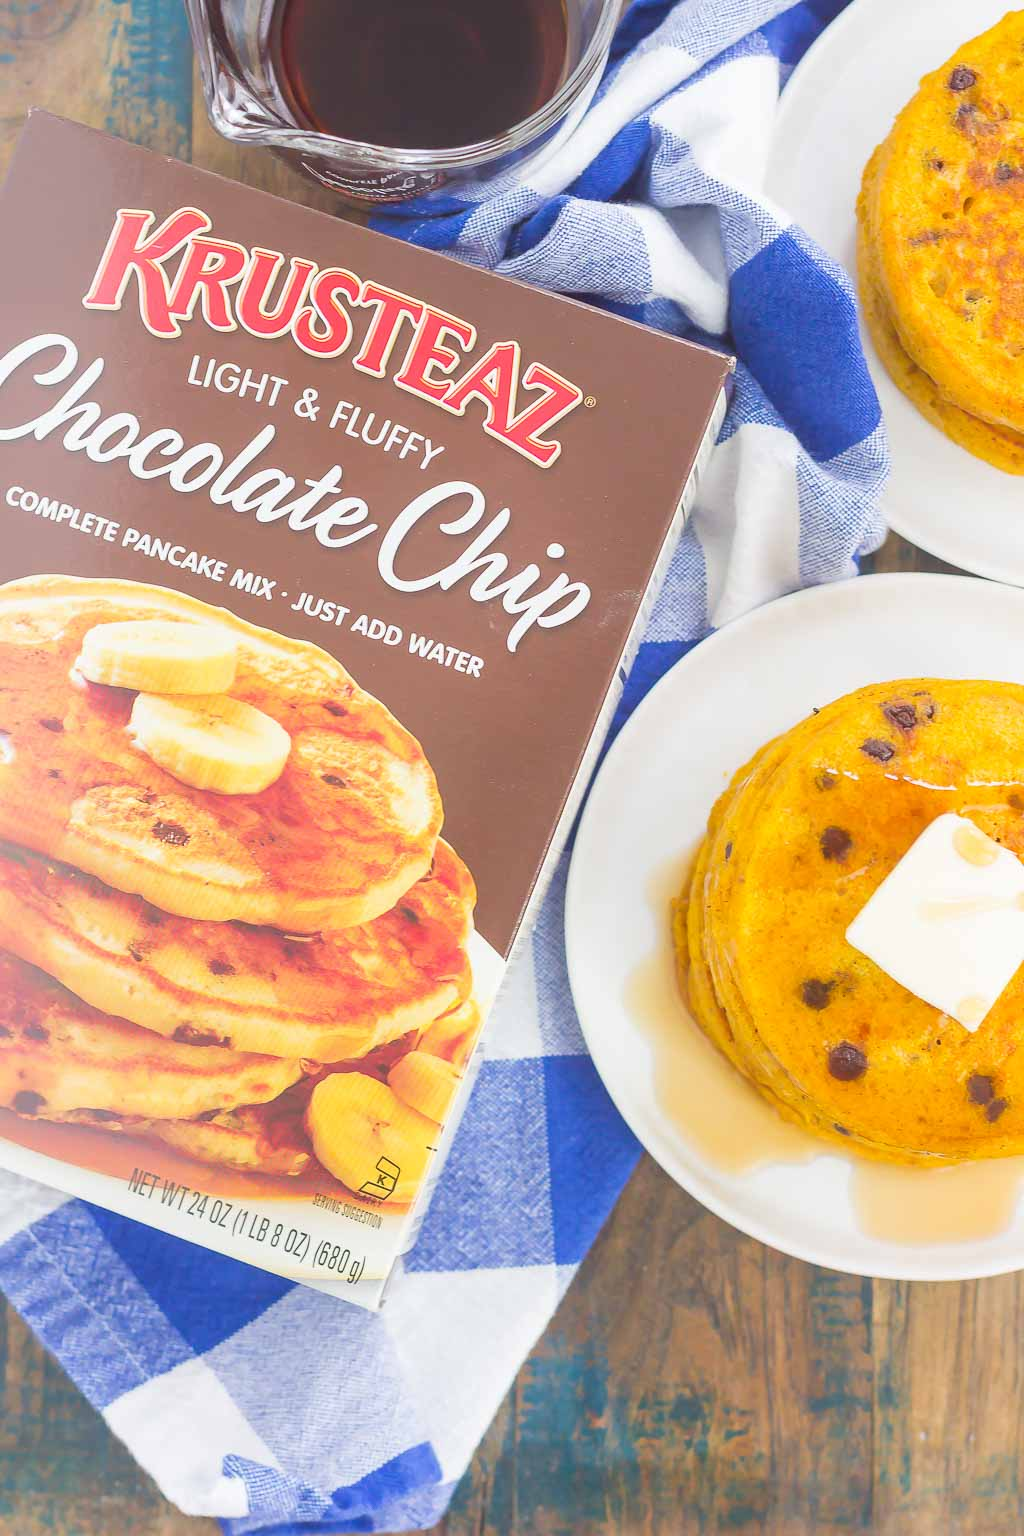 These Pumpkin Chocolate Chip Pancakes make a deliciously cozy breakfast for fall. Filled with sweet pumpkin and bursting with chocolate chips, these simple pancakes are soft, fluffy and so easy to make!